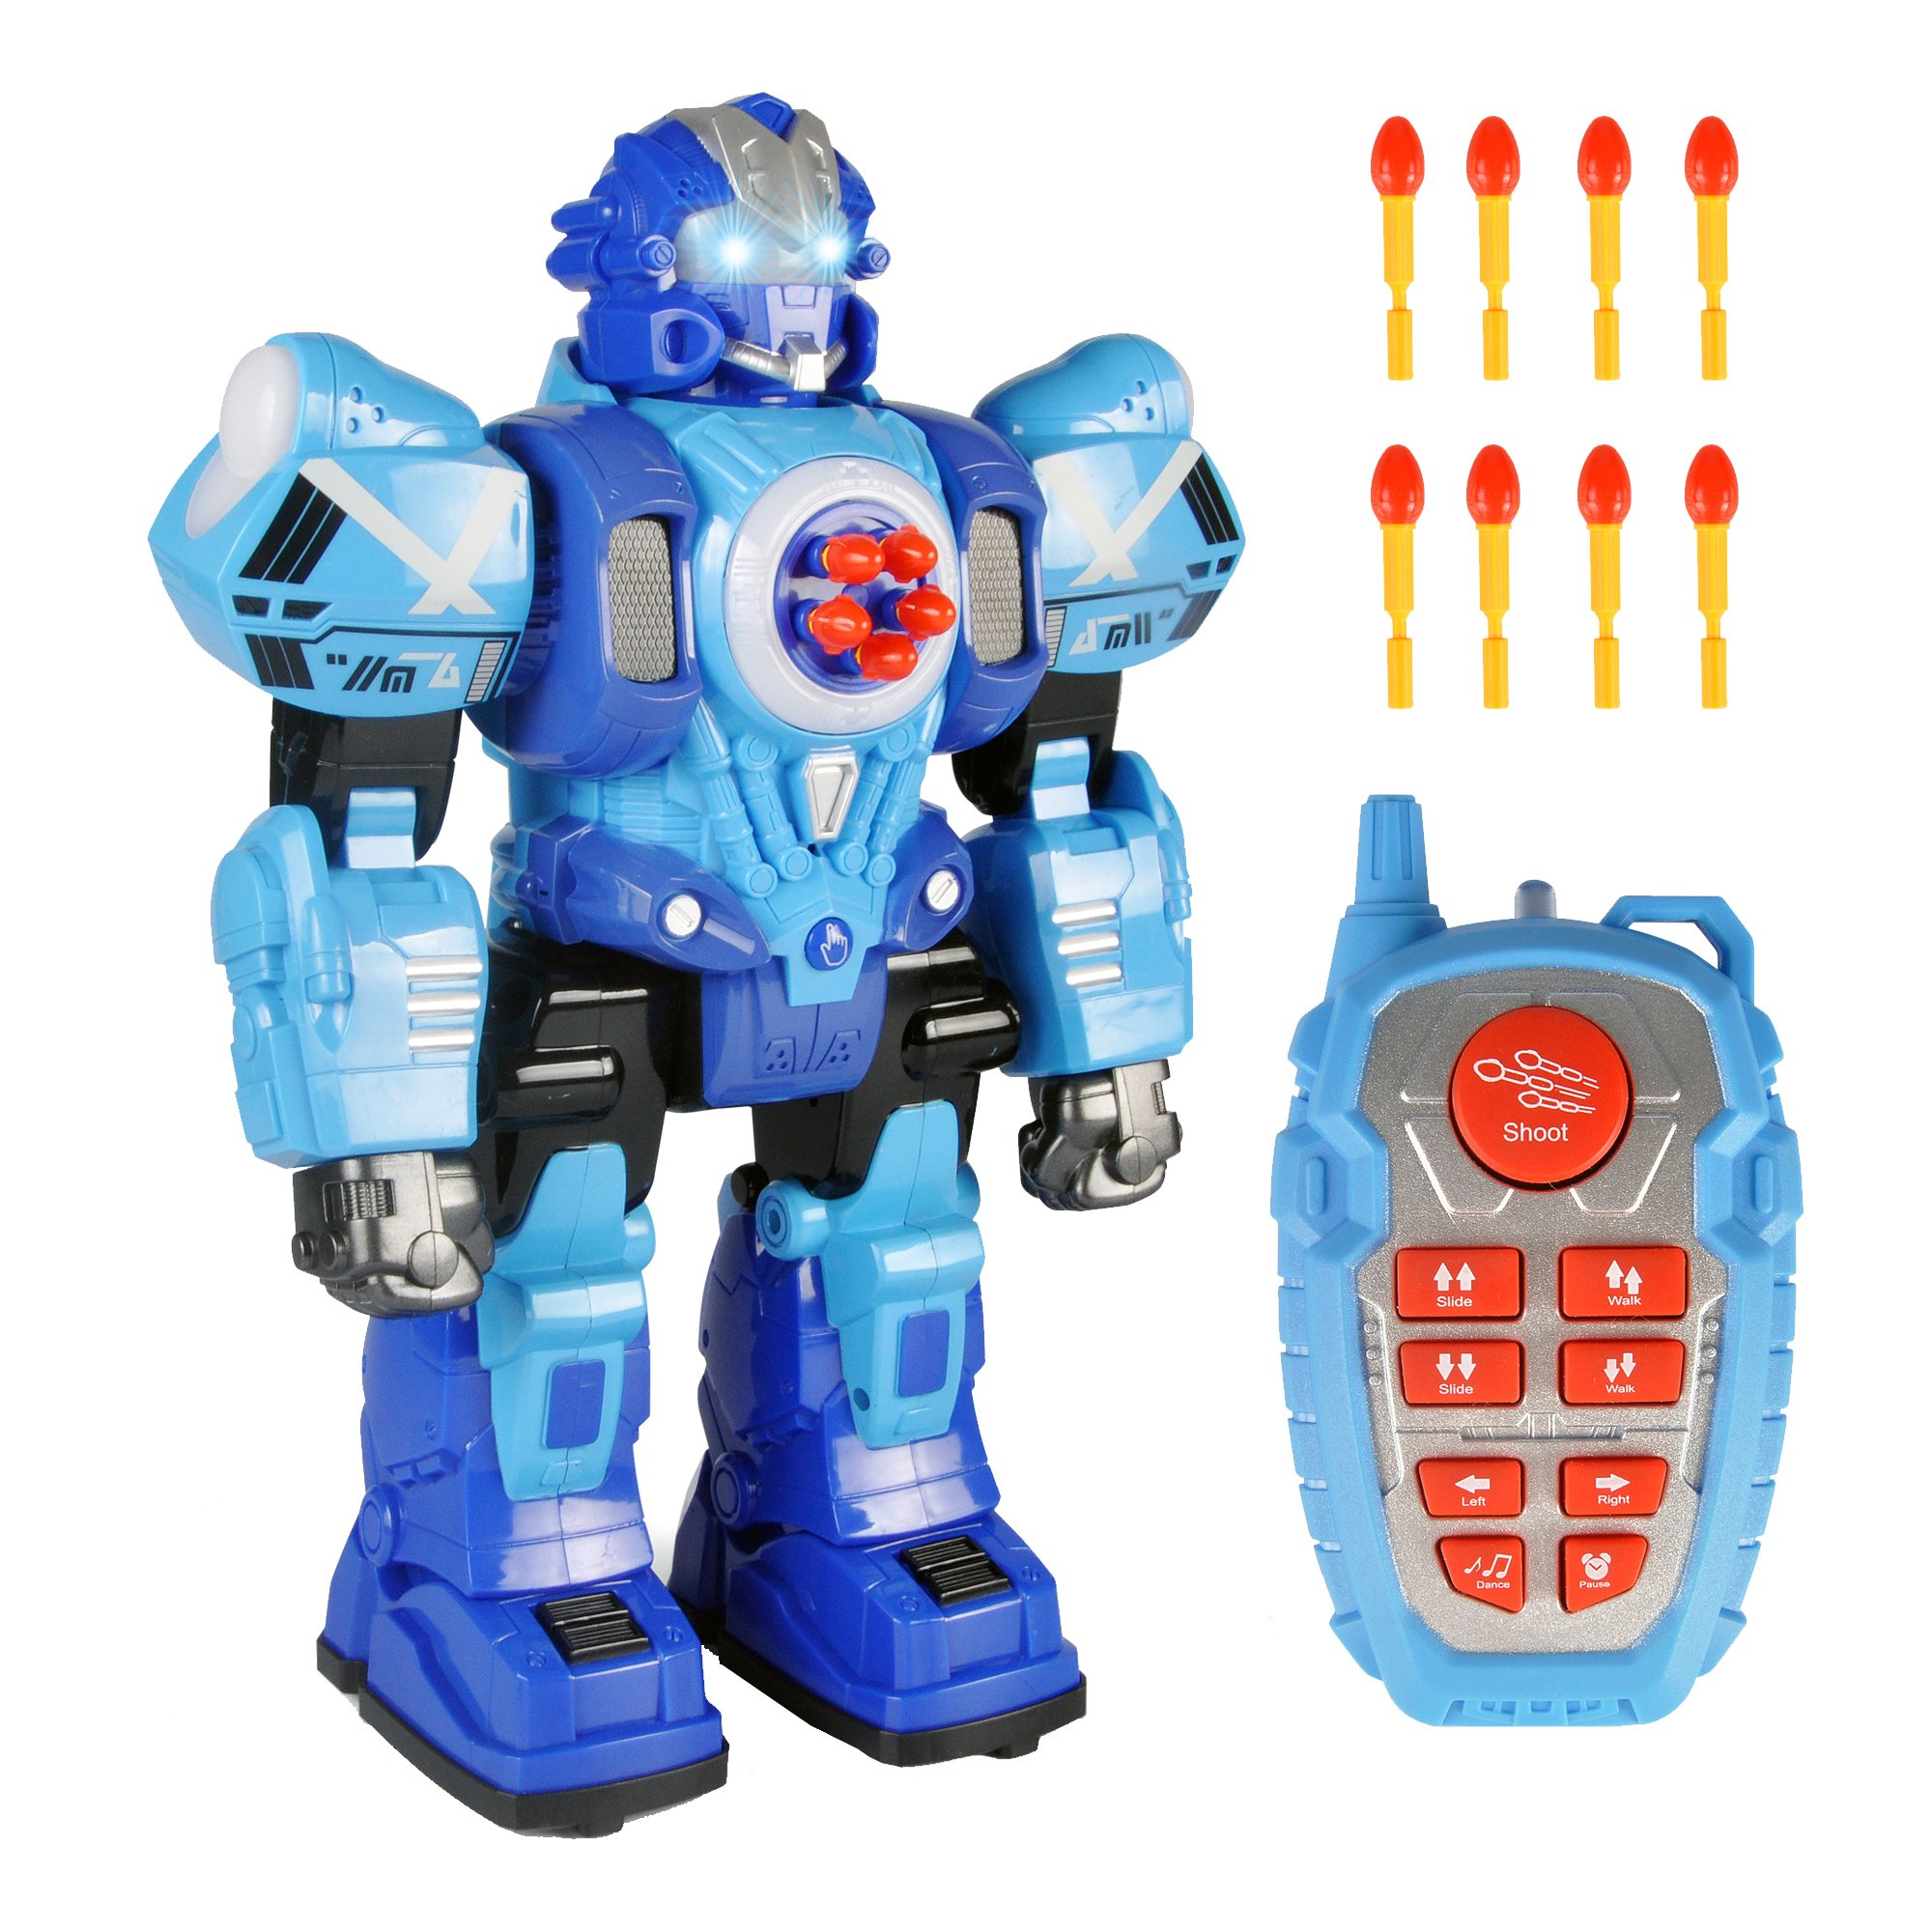 Liberty Imports Large Remote Control Robot Toy for Kids - RC Robot Shoots Darts, Walks, Talks, and Dances (10 Functions)